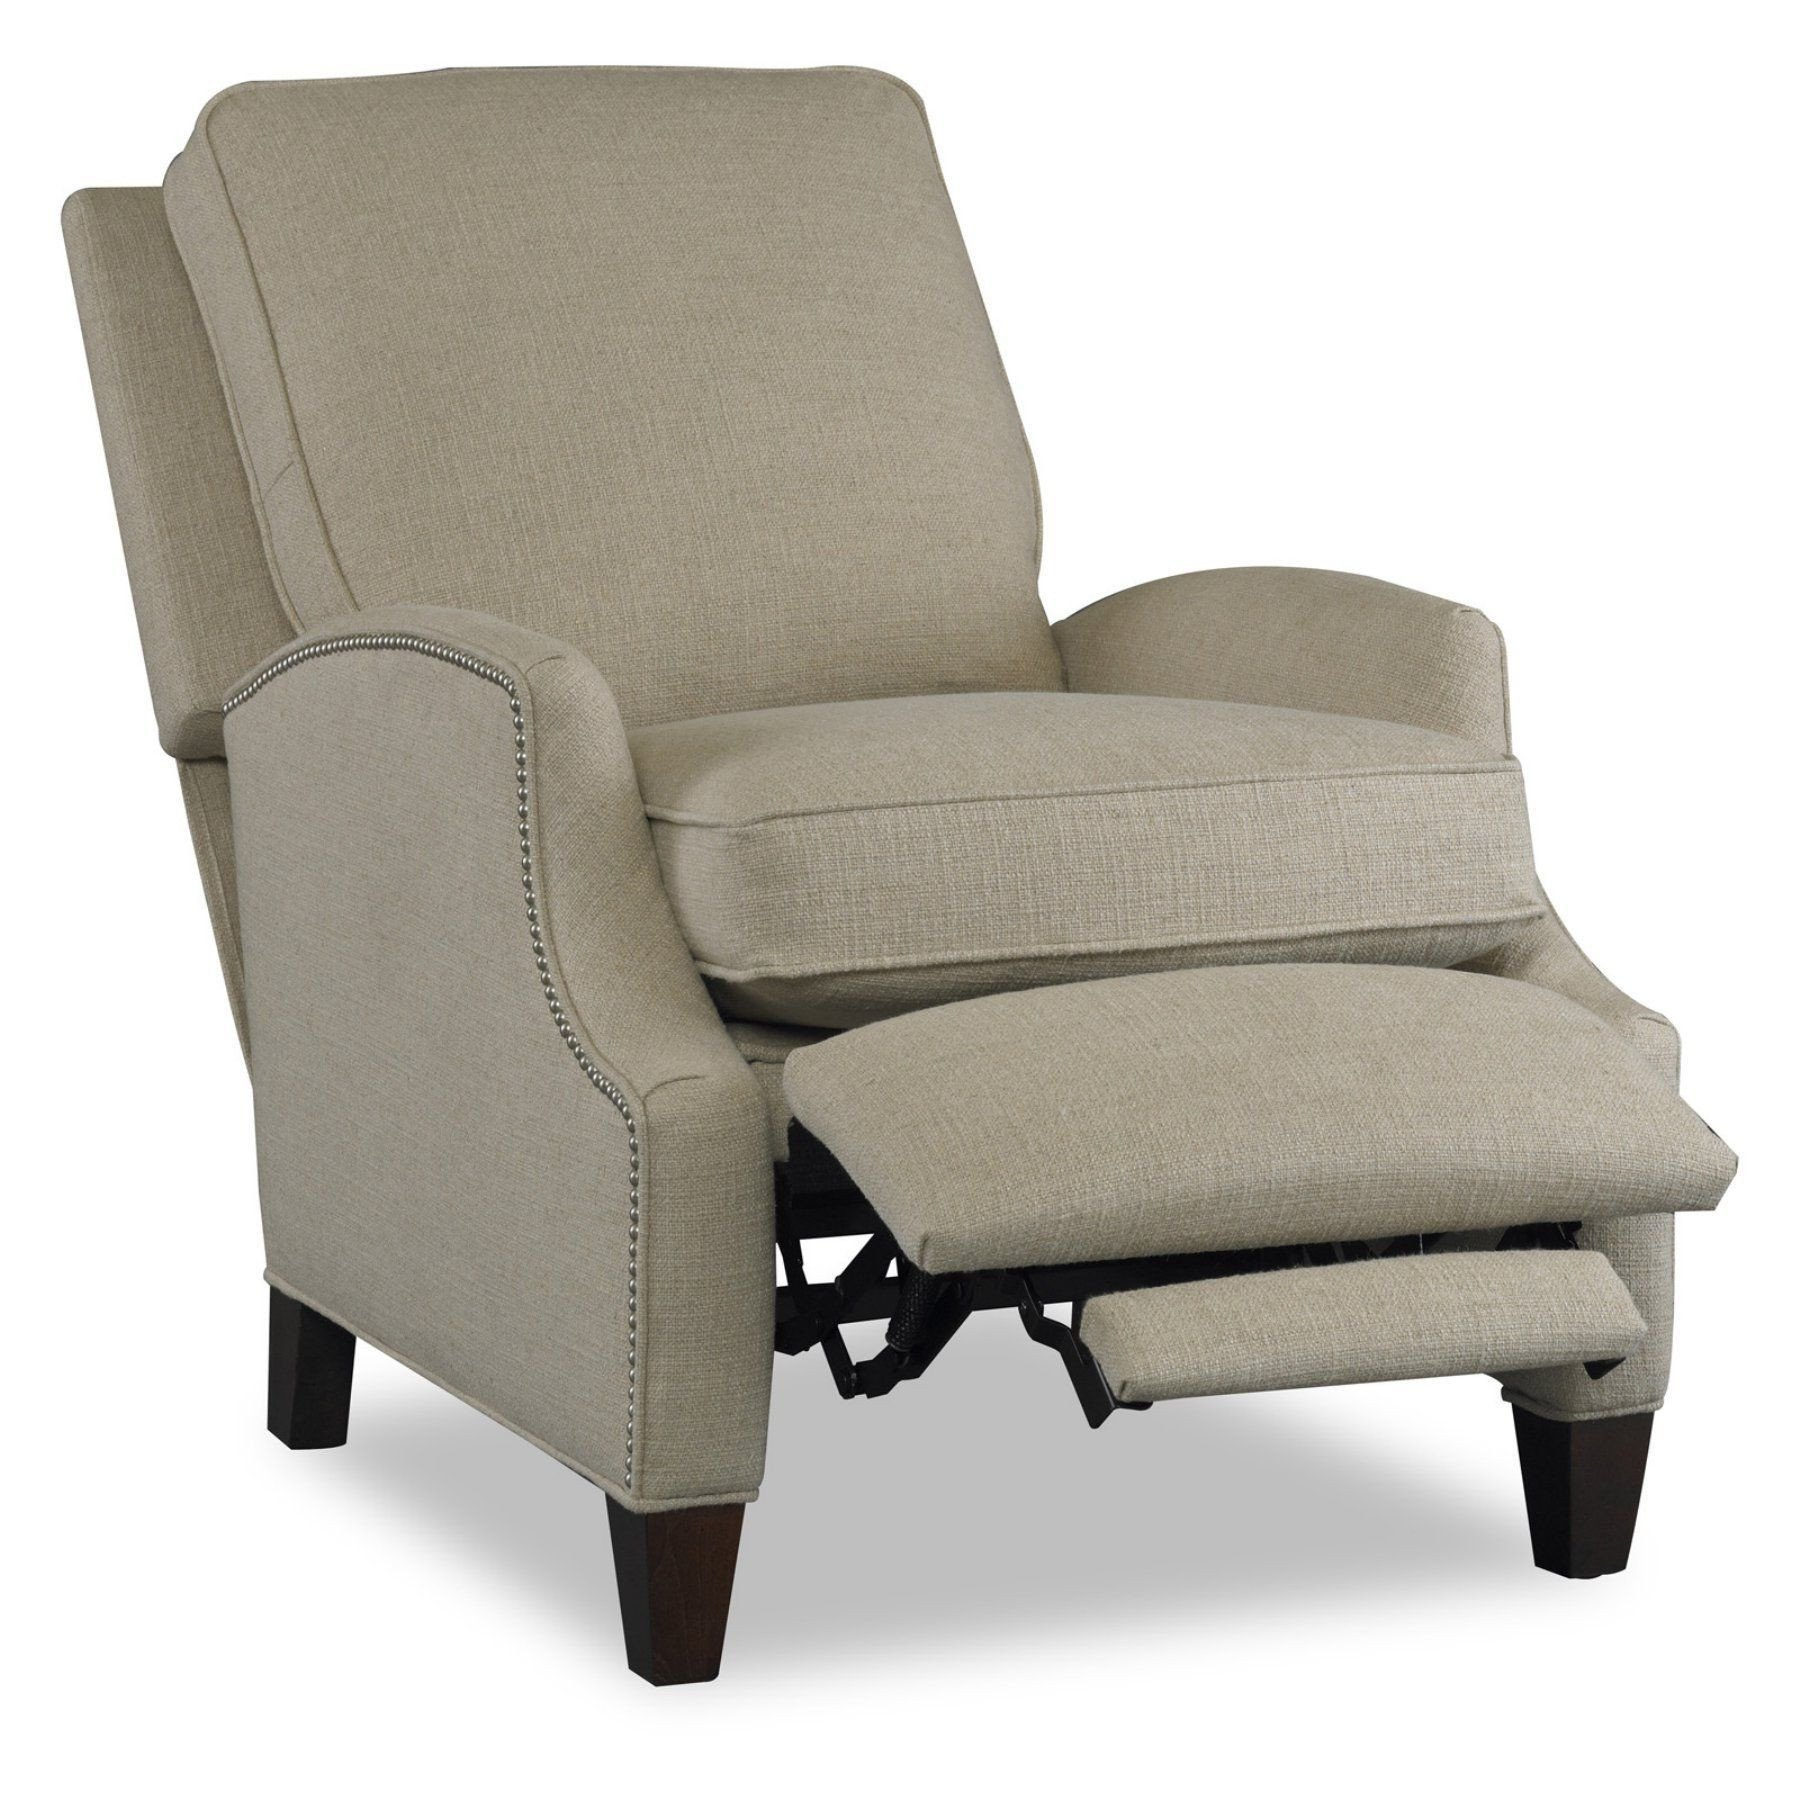 Small Recliners for Bedroom Luxury Sam Moore Demetrius Push Back Recliner 5586 22 8402